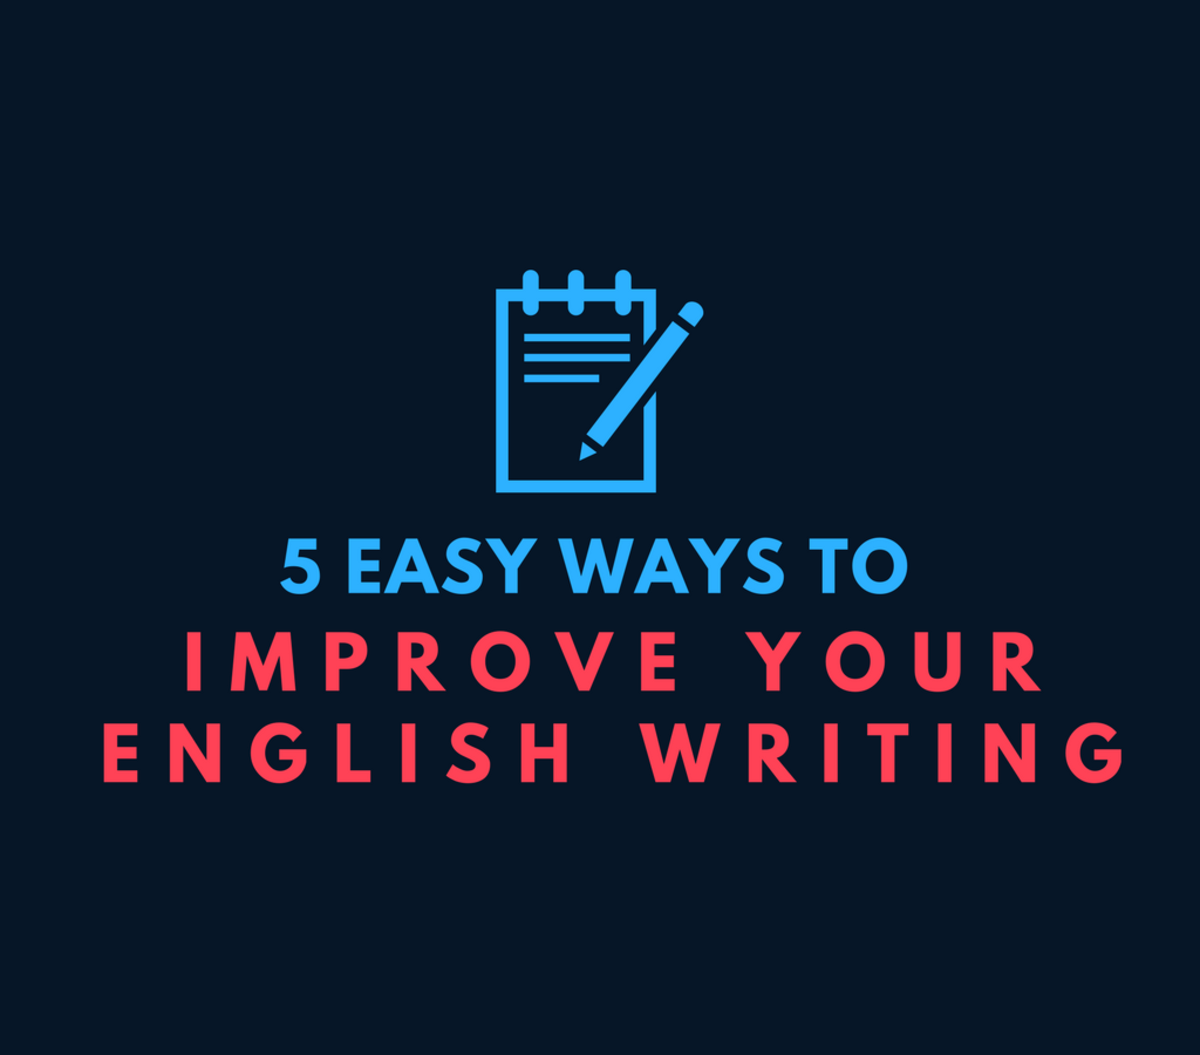 Want to take your English to the next level and become a competent writer?